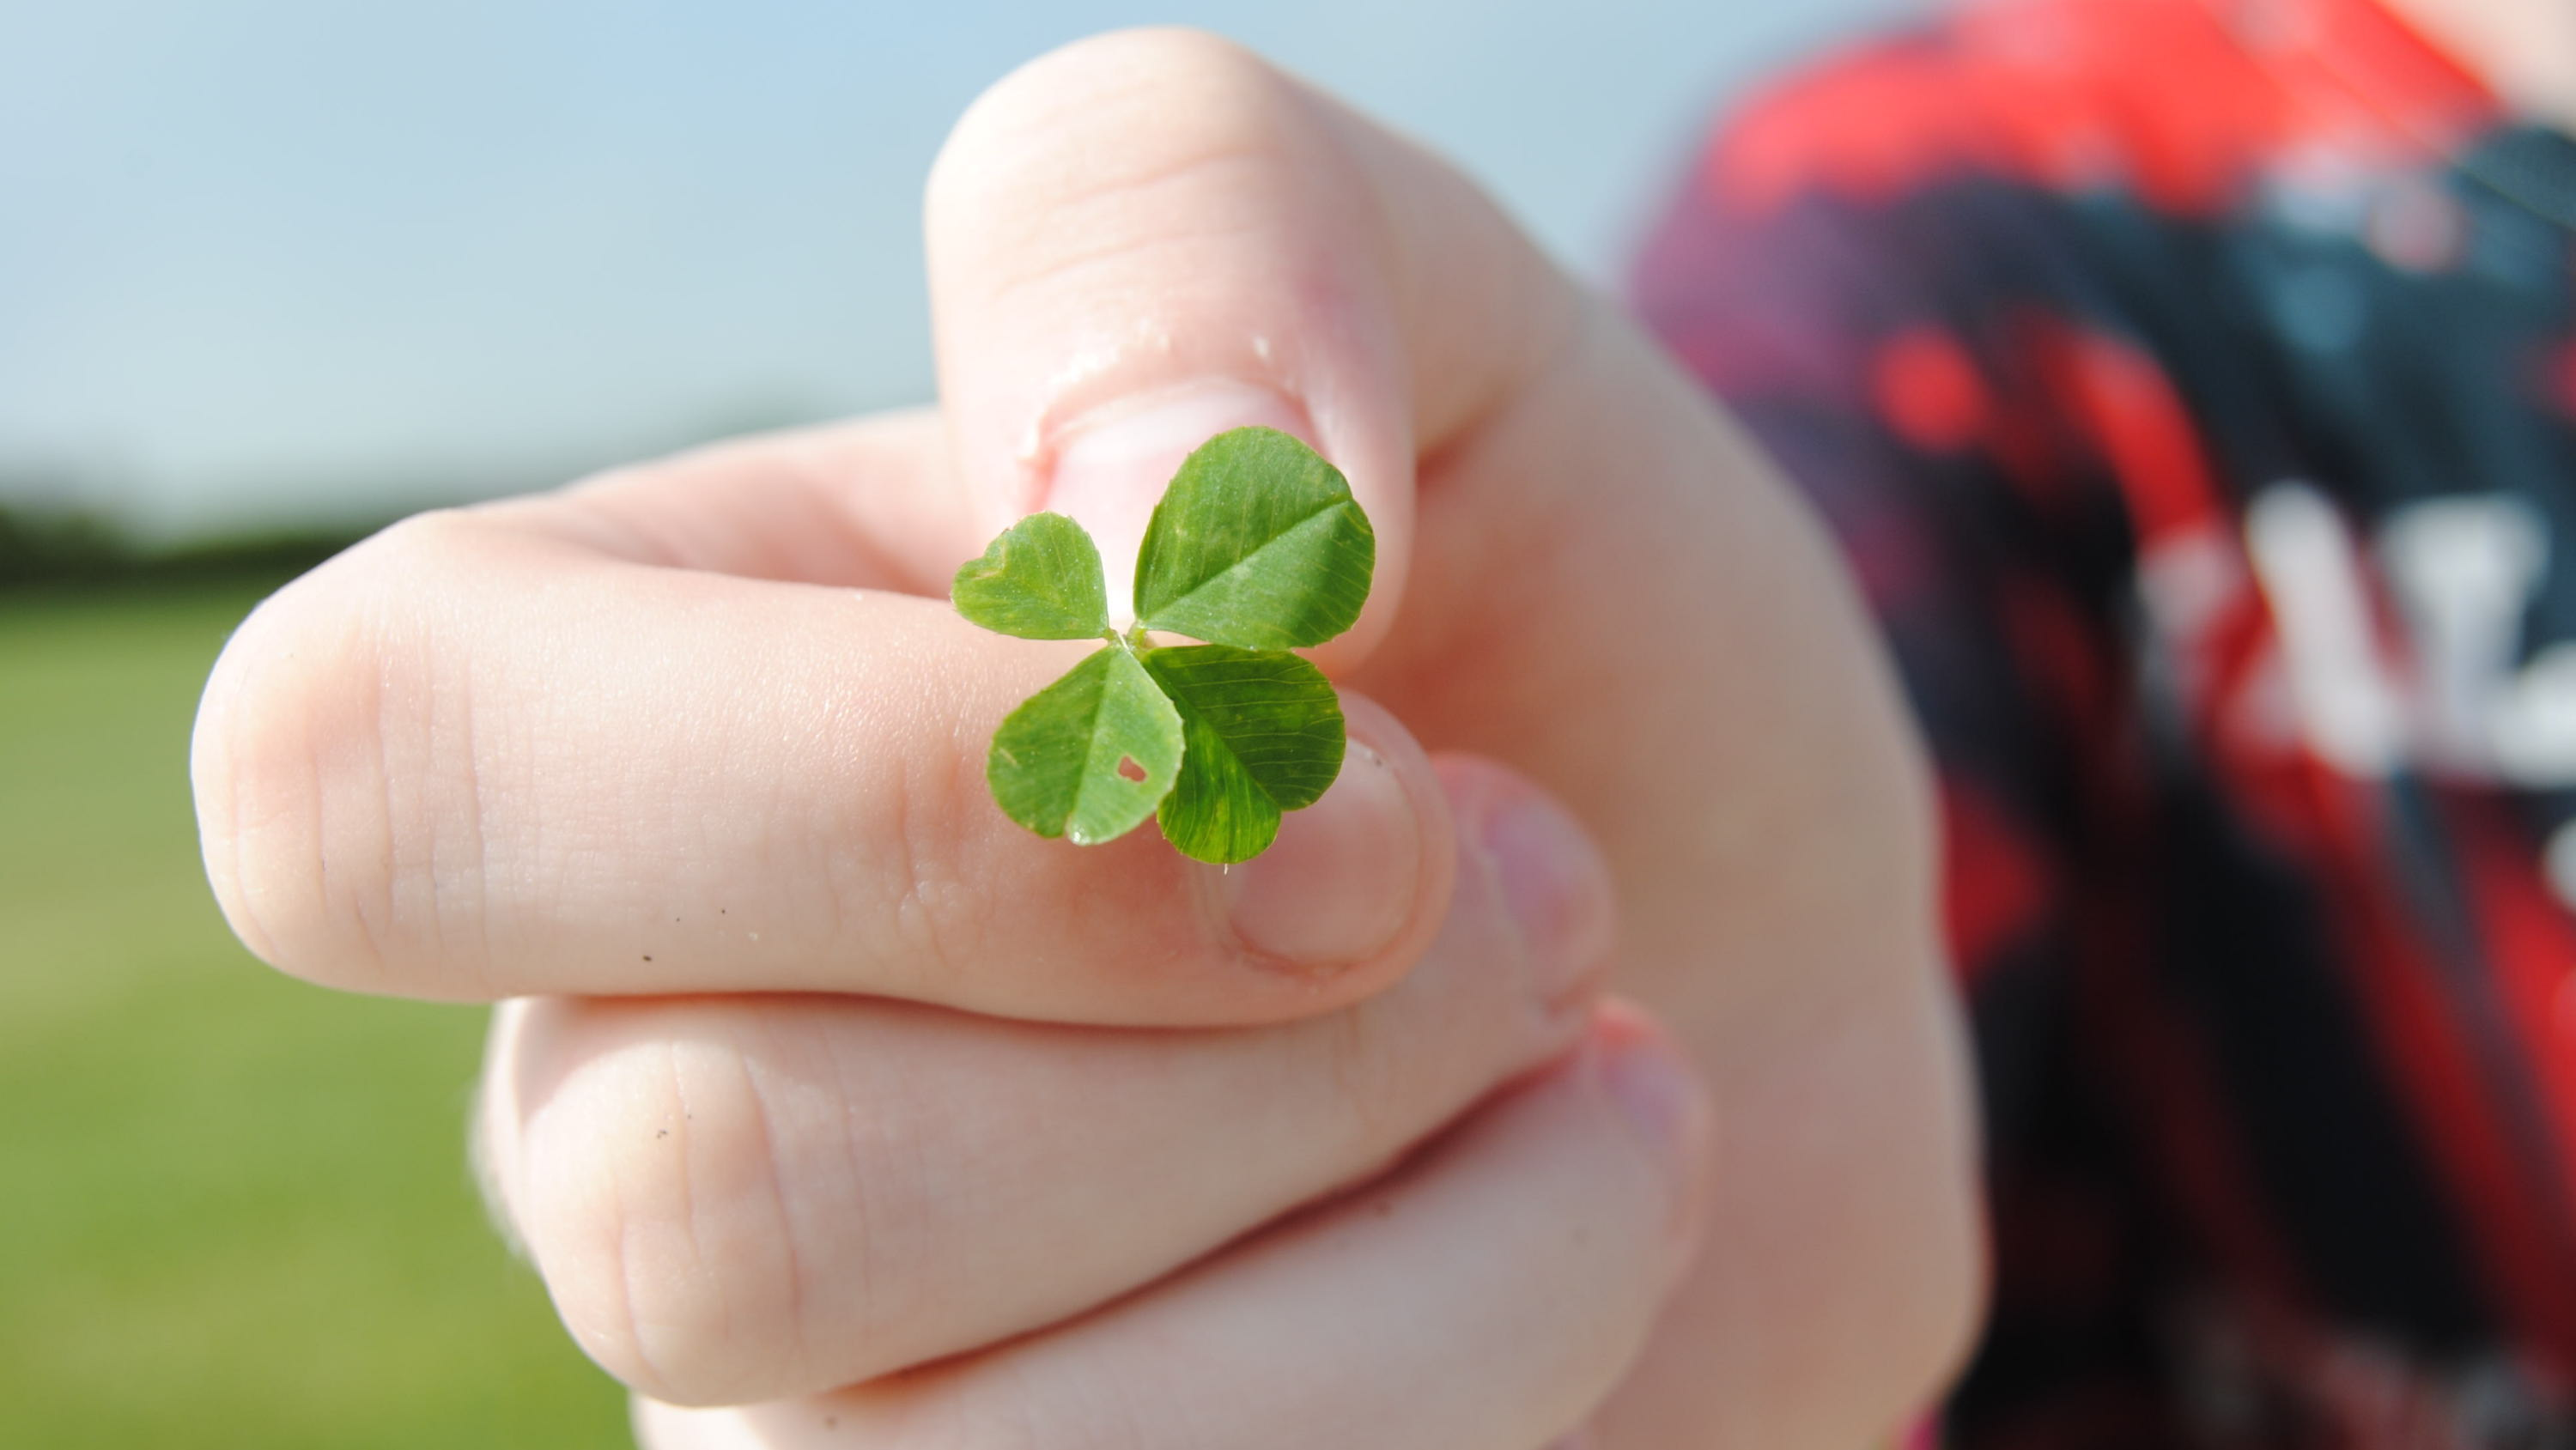 A Cornell Economist Who Studies Luck Says The More You Acknowledge